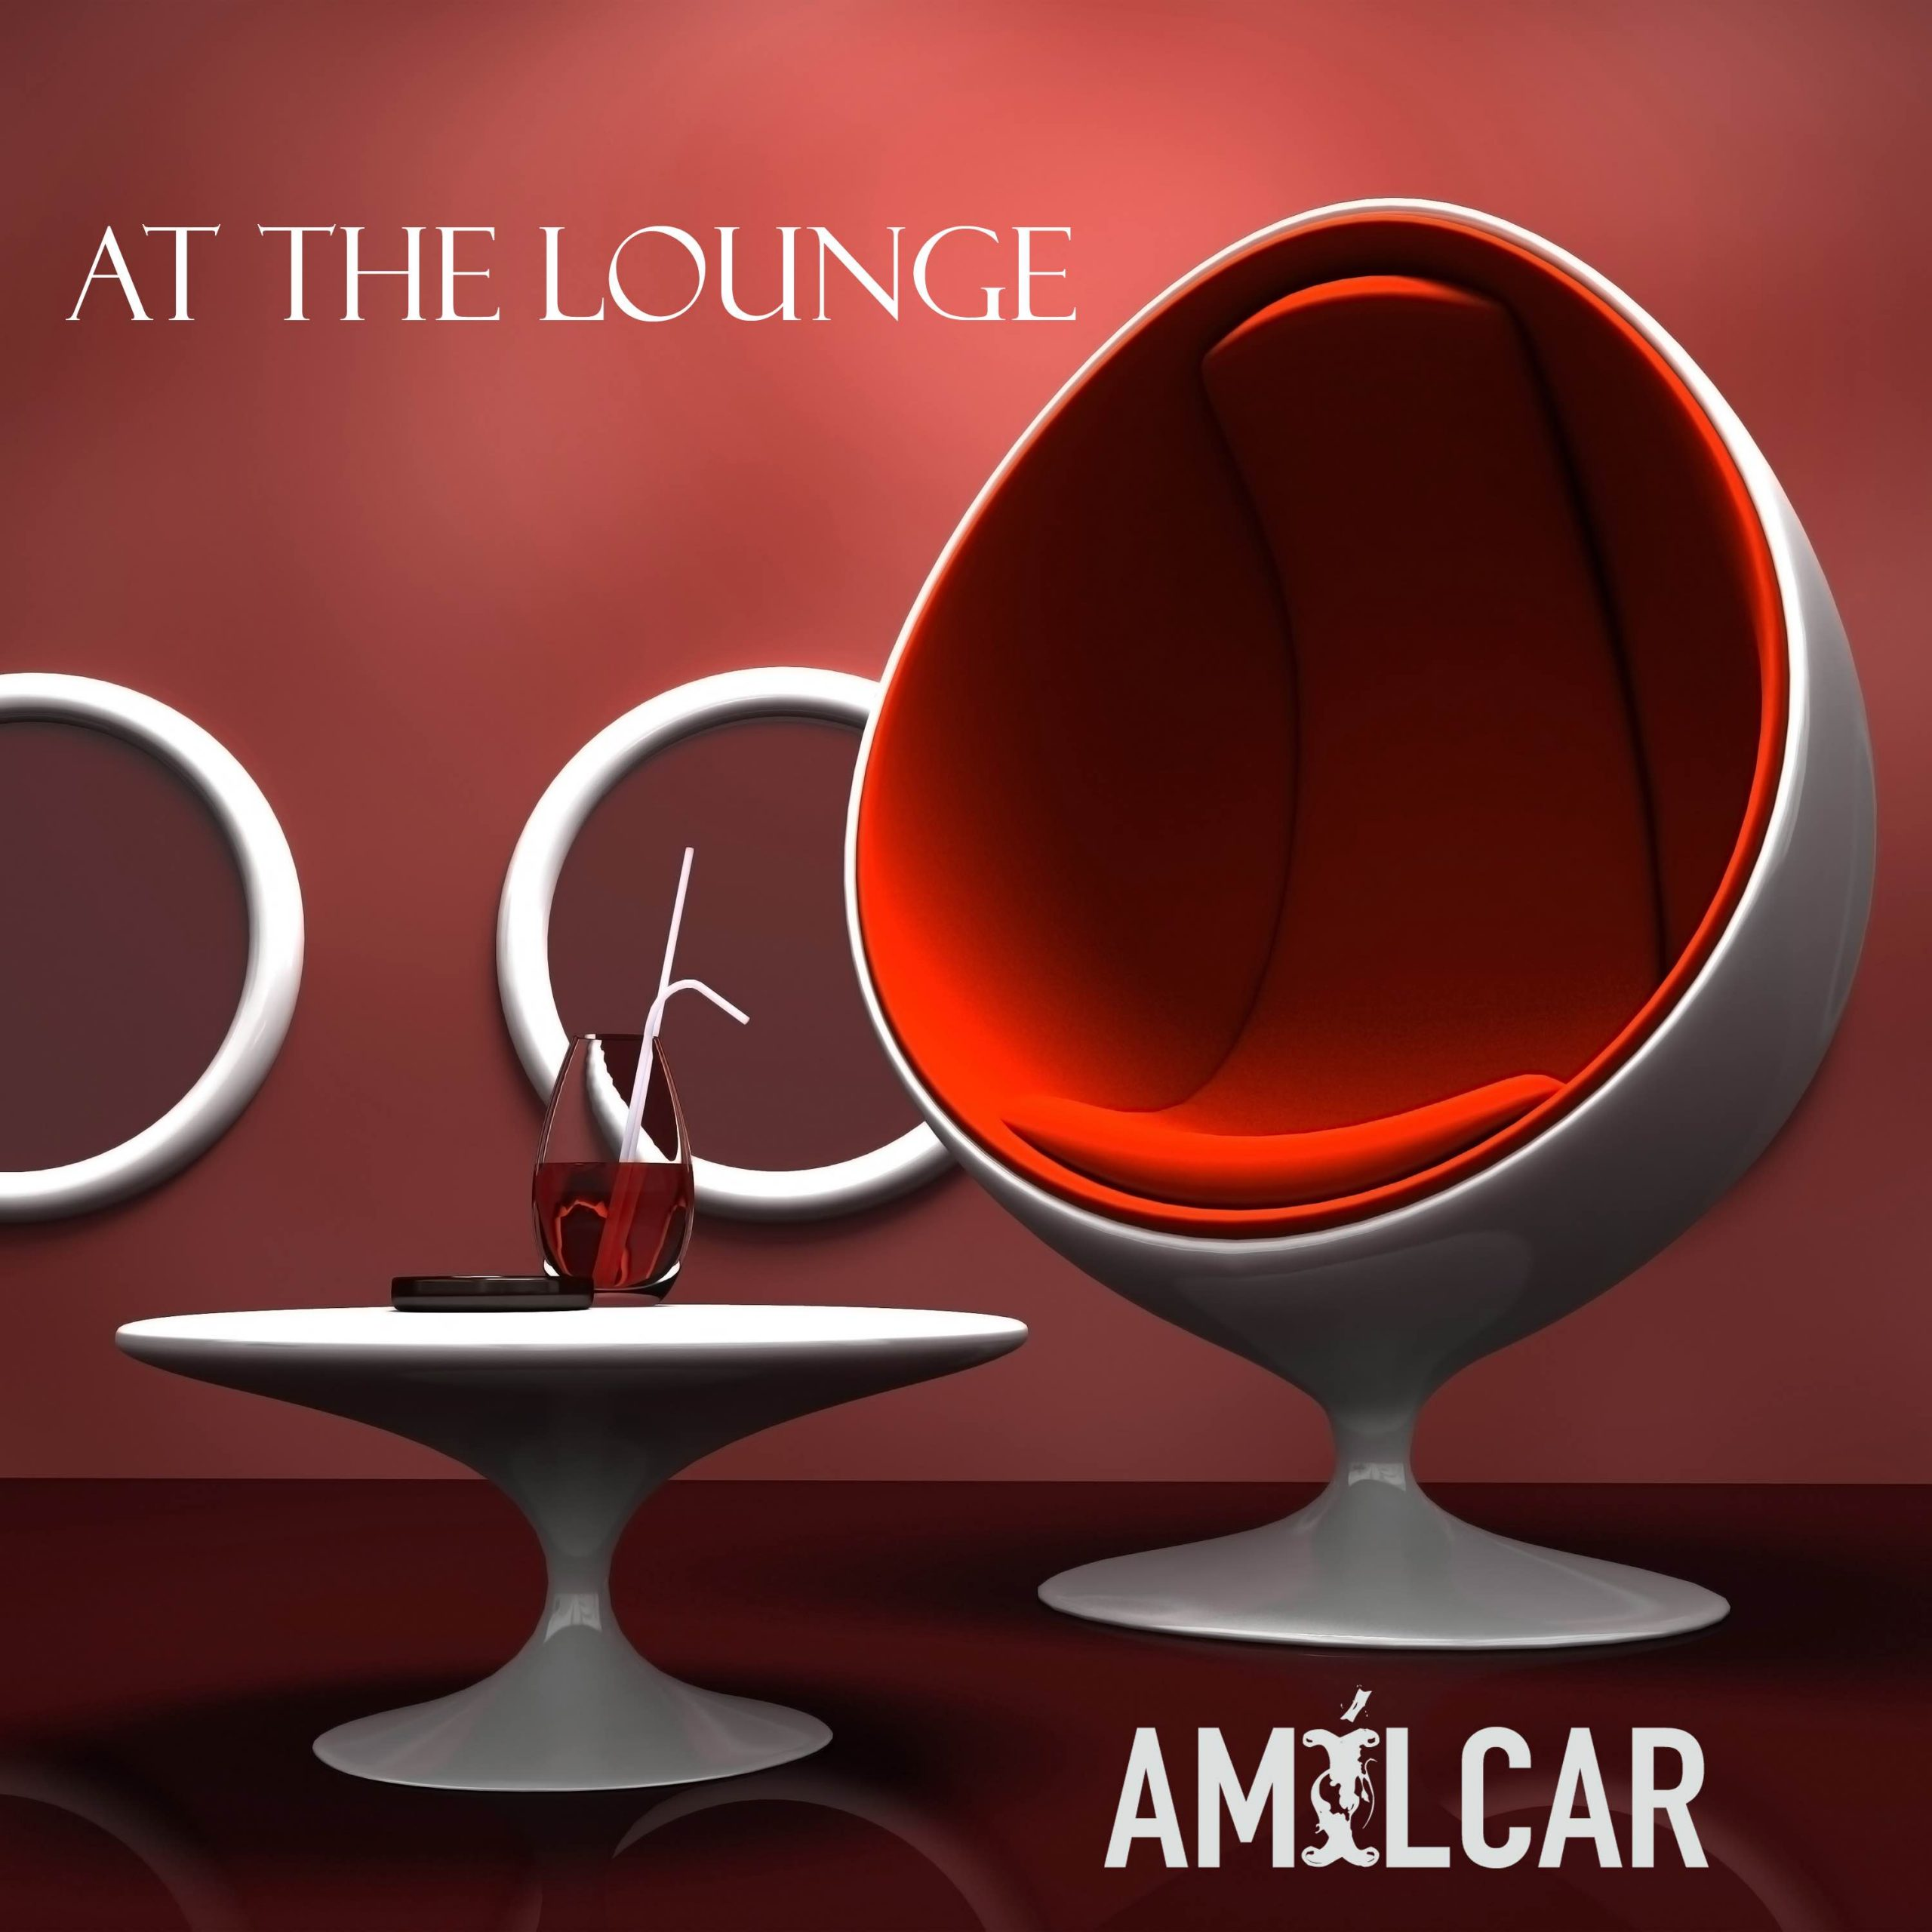 """Amilcar Releases """"At the Lounge"""" with a Unique Fresh Lounge Style"""